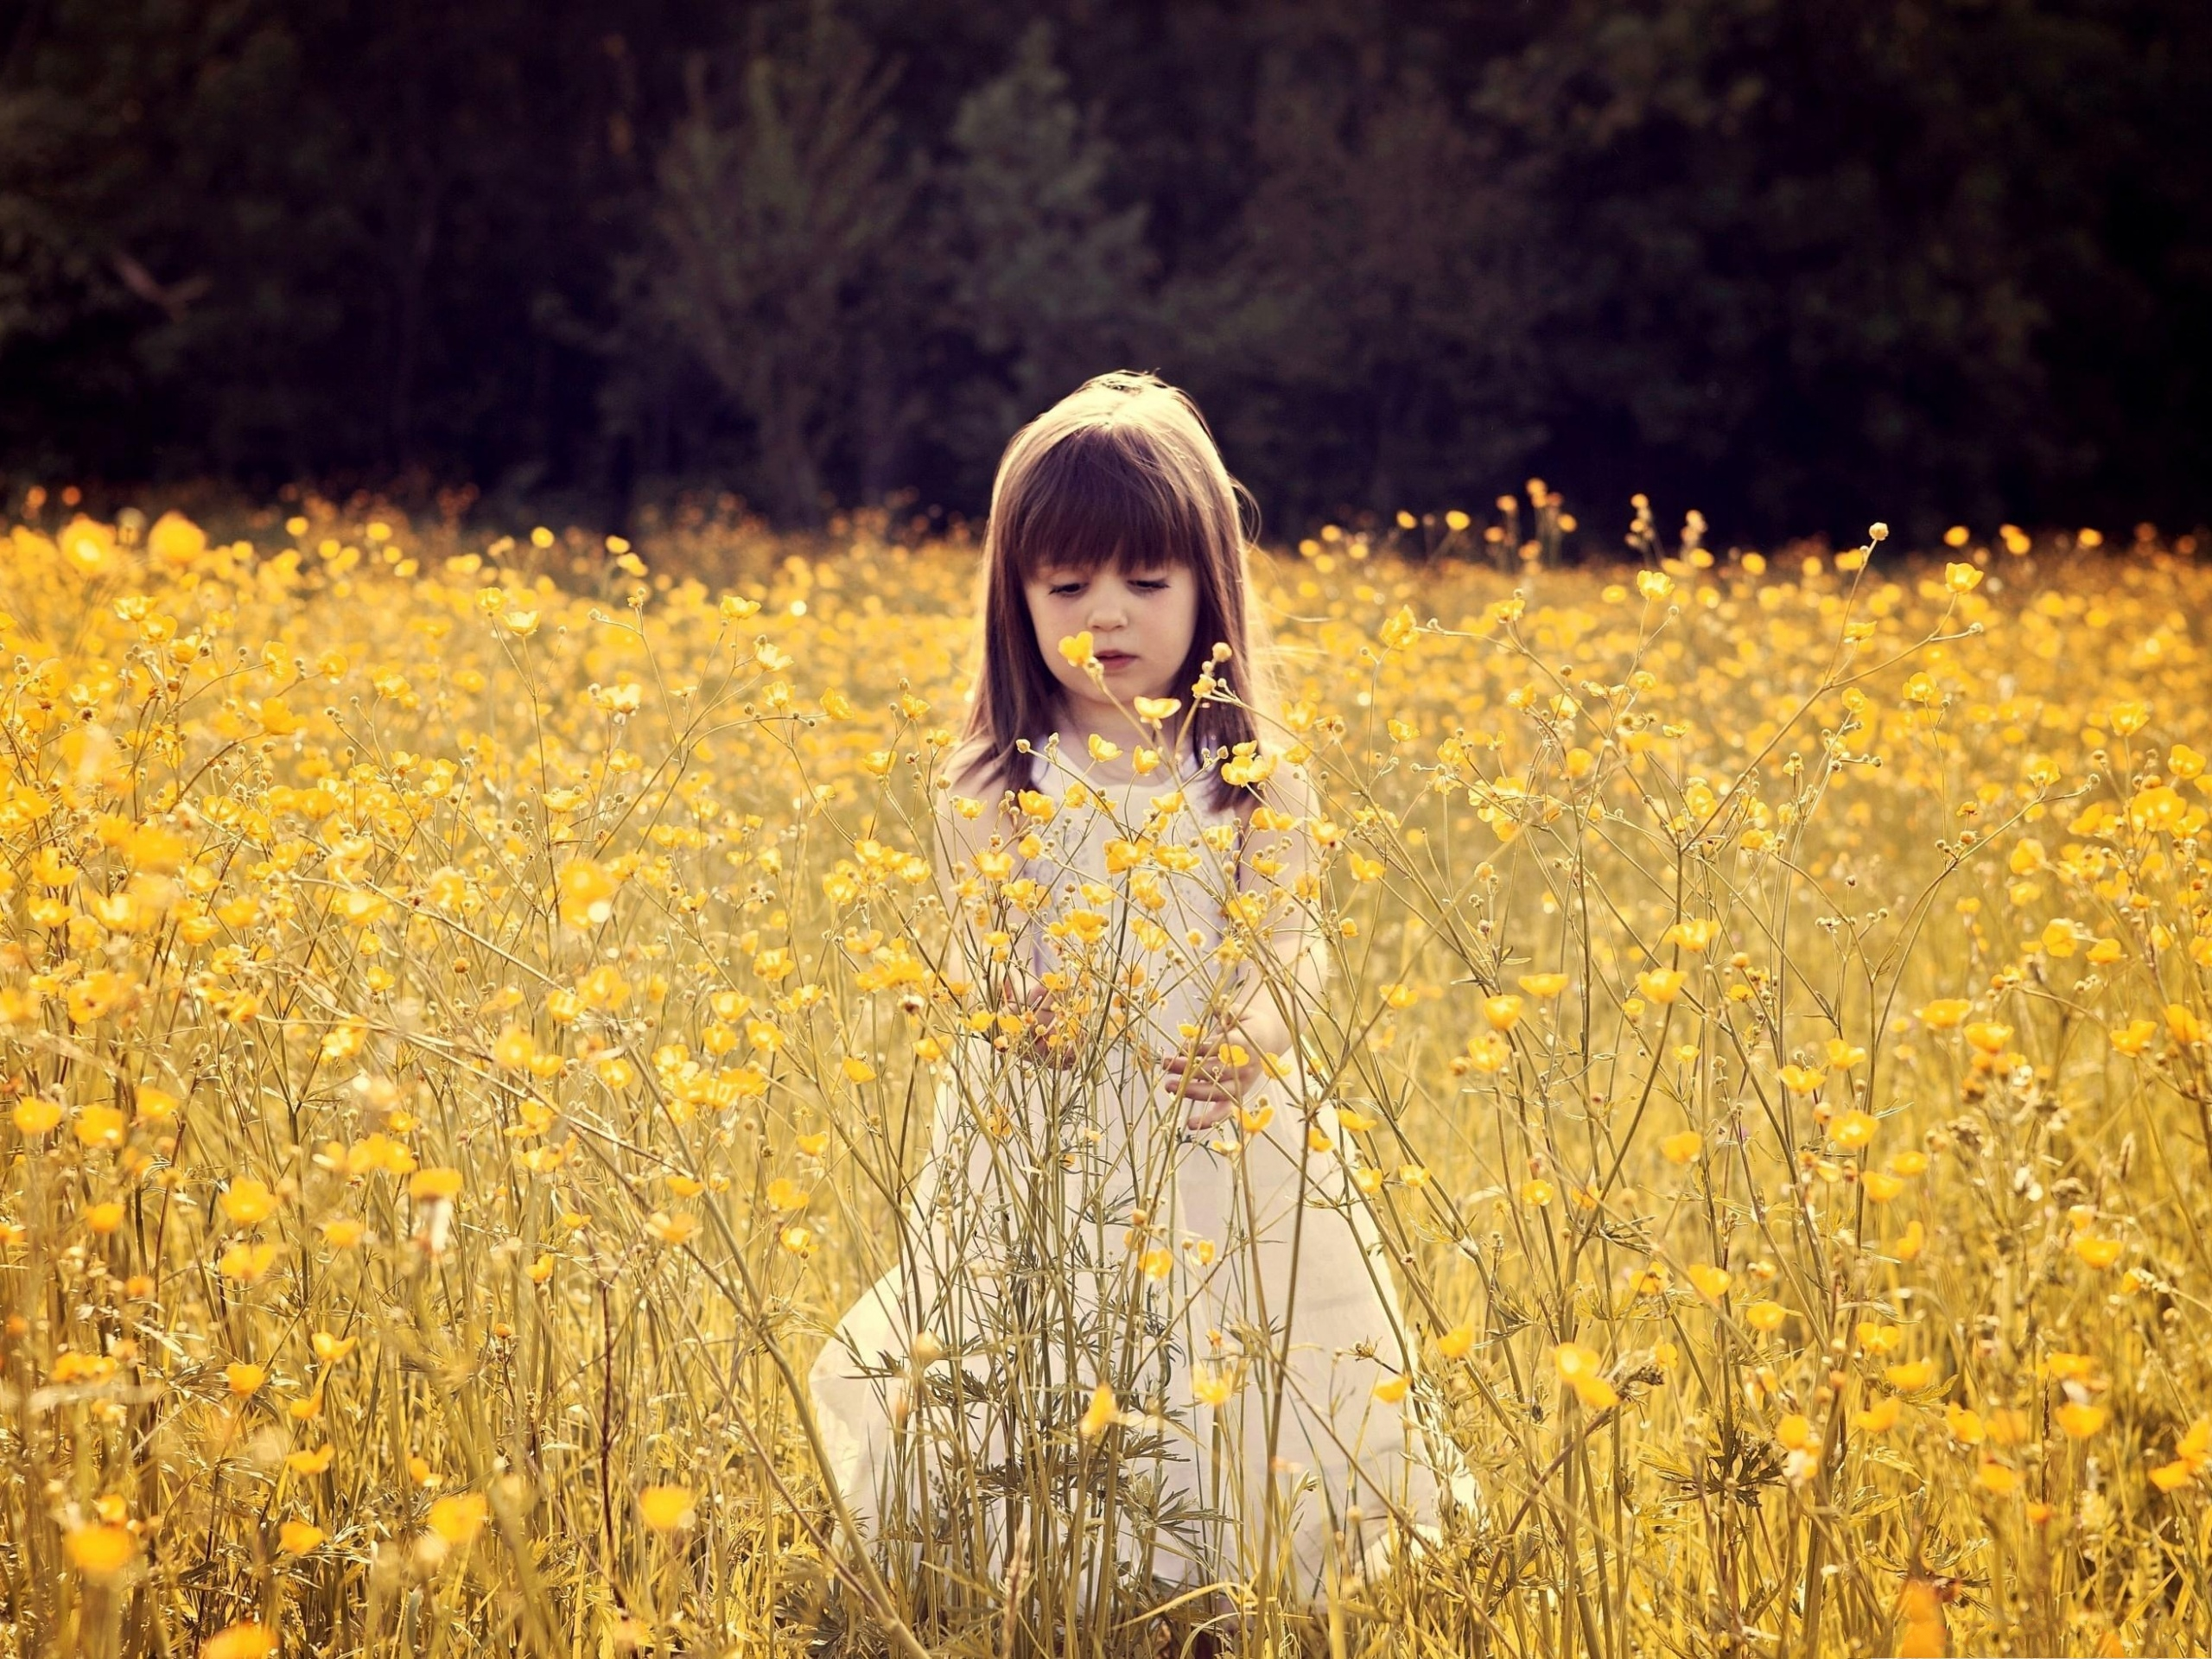 Flower Field Photography, Cute Baby Girl in Yellow Flower Sea, Having Great Fun--2560X1920 free wallpaper download